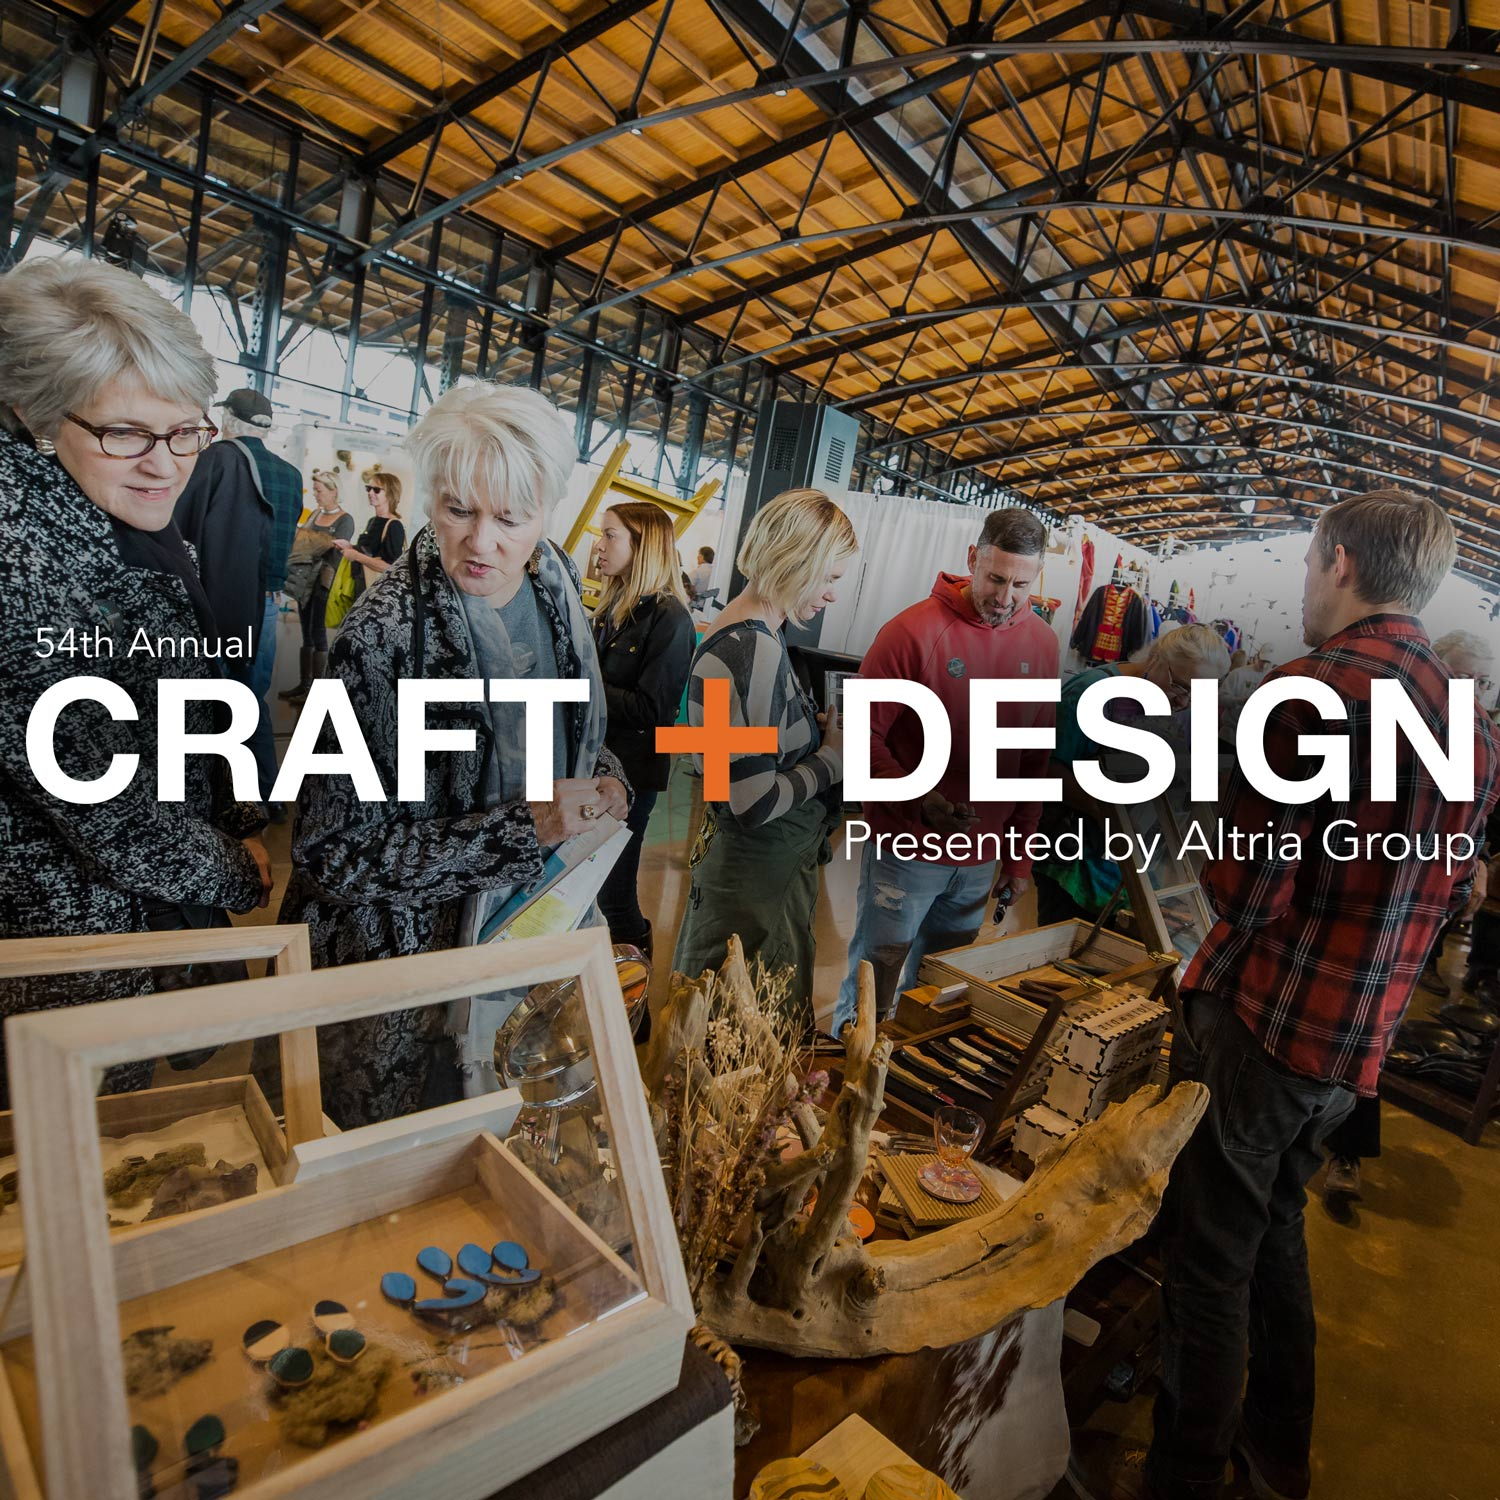 Over 150 Artists To Exhibit At Craft Design Nov 16 18 Visual